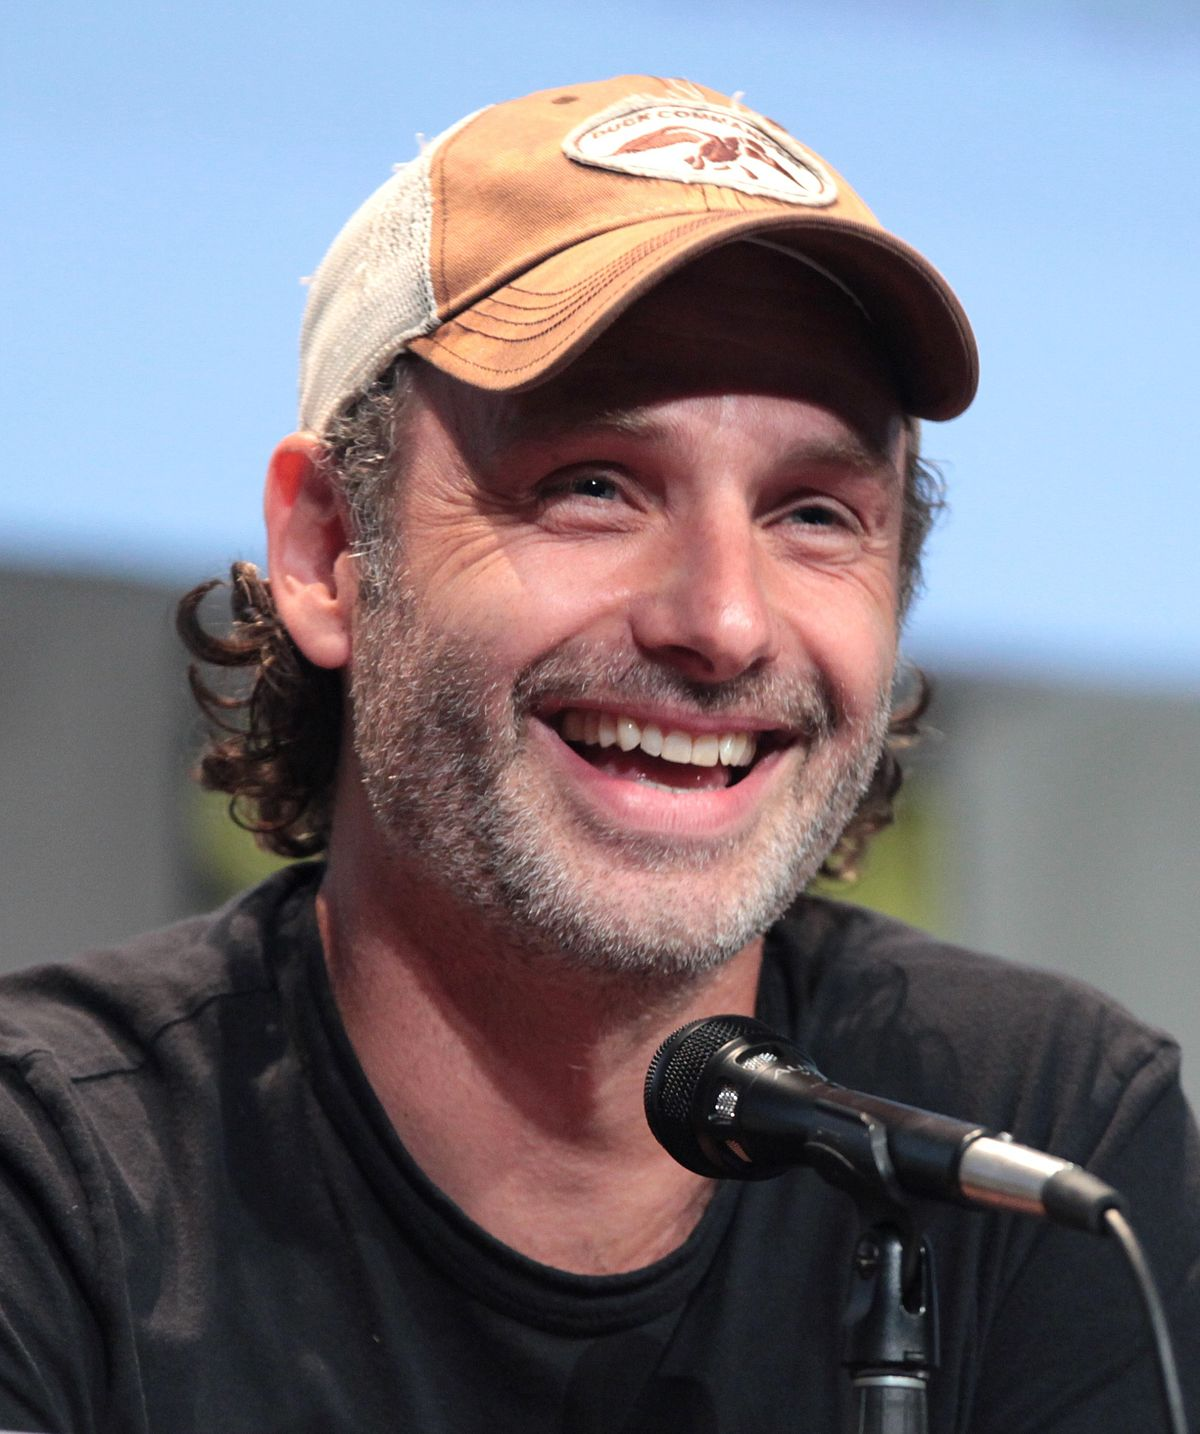 https://upload.wikimedia.org/wikipedia/commons/thumb/e/e8/AndrewLincoln2015_(cropped).jpg/1200px-AndrewLincoln2015_(cropped).jpg